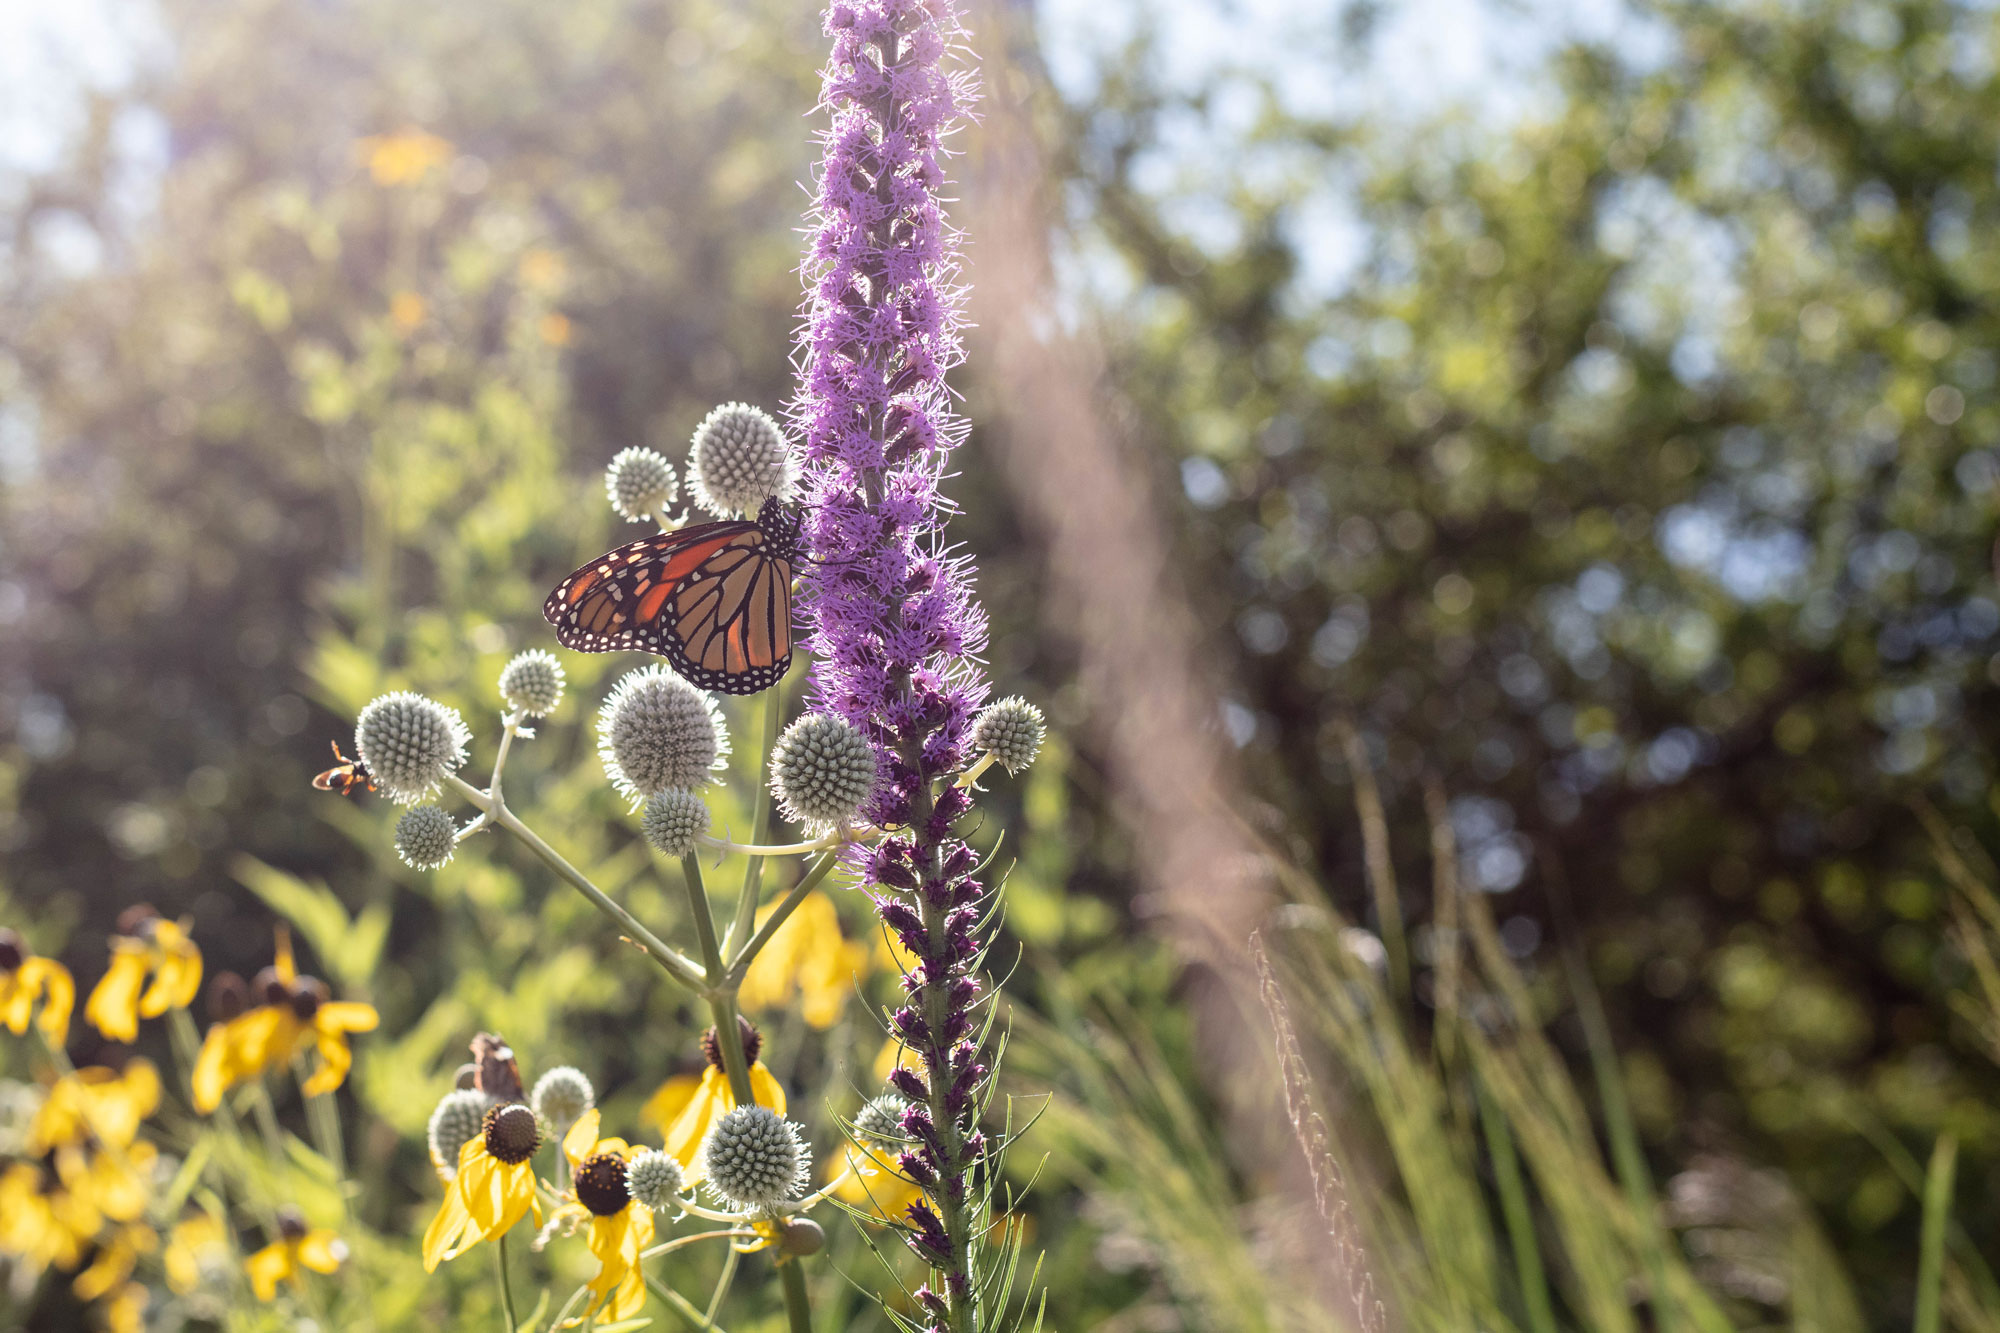 A monarch butterfly perches on a purple blazing star flower on a sunny day. Black-eyed Susans and other prairie plants are in the background.